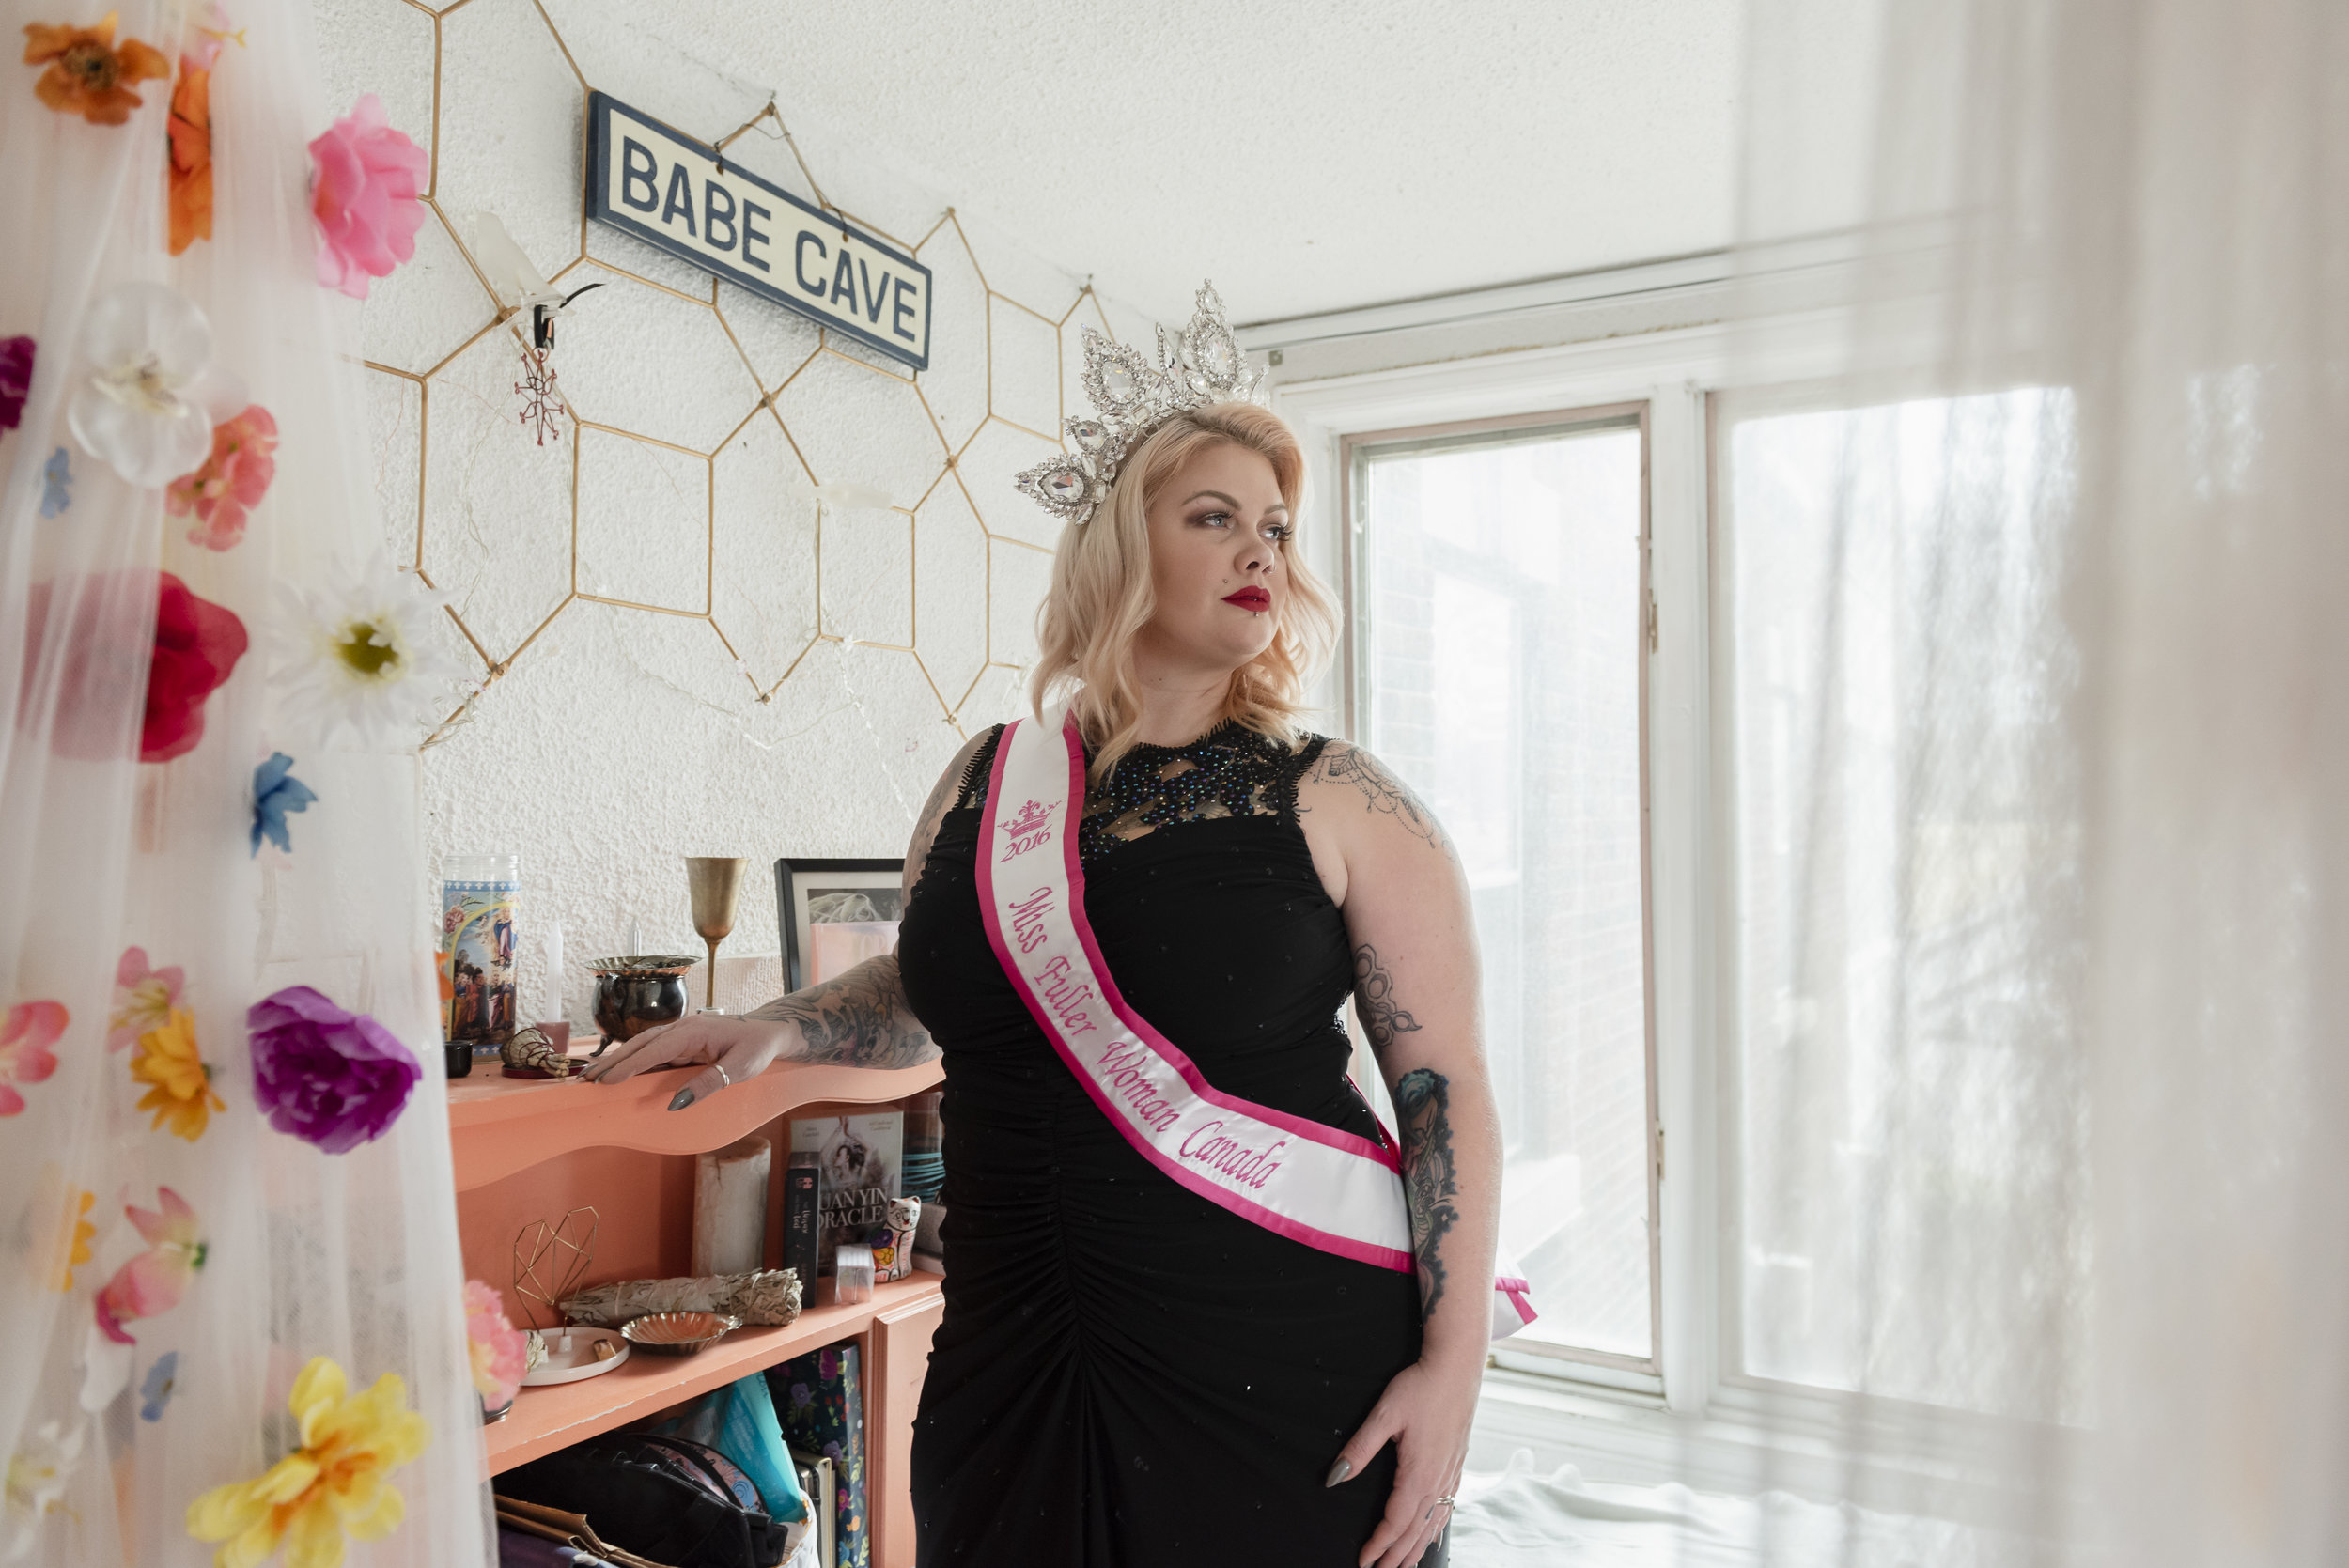 Vanessa Nash-Gale is a 39 year-old sewing and leathercraft teacher from Newfoundland. She was the winner of Miss Fuller Woman Canada in 2016. Shot in Vanessa's home in Toronto, April 6, 2019.